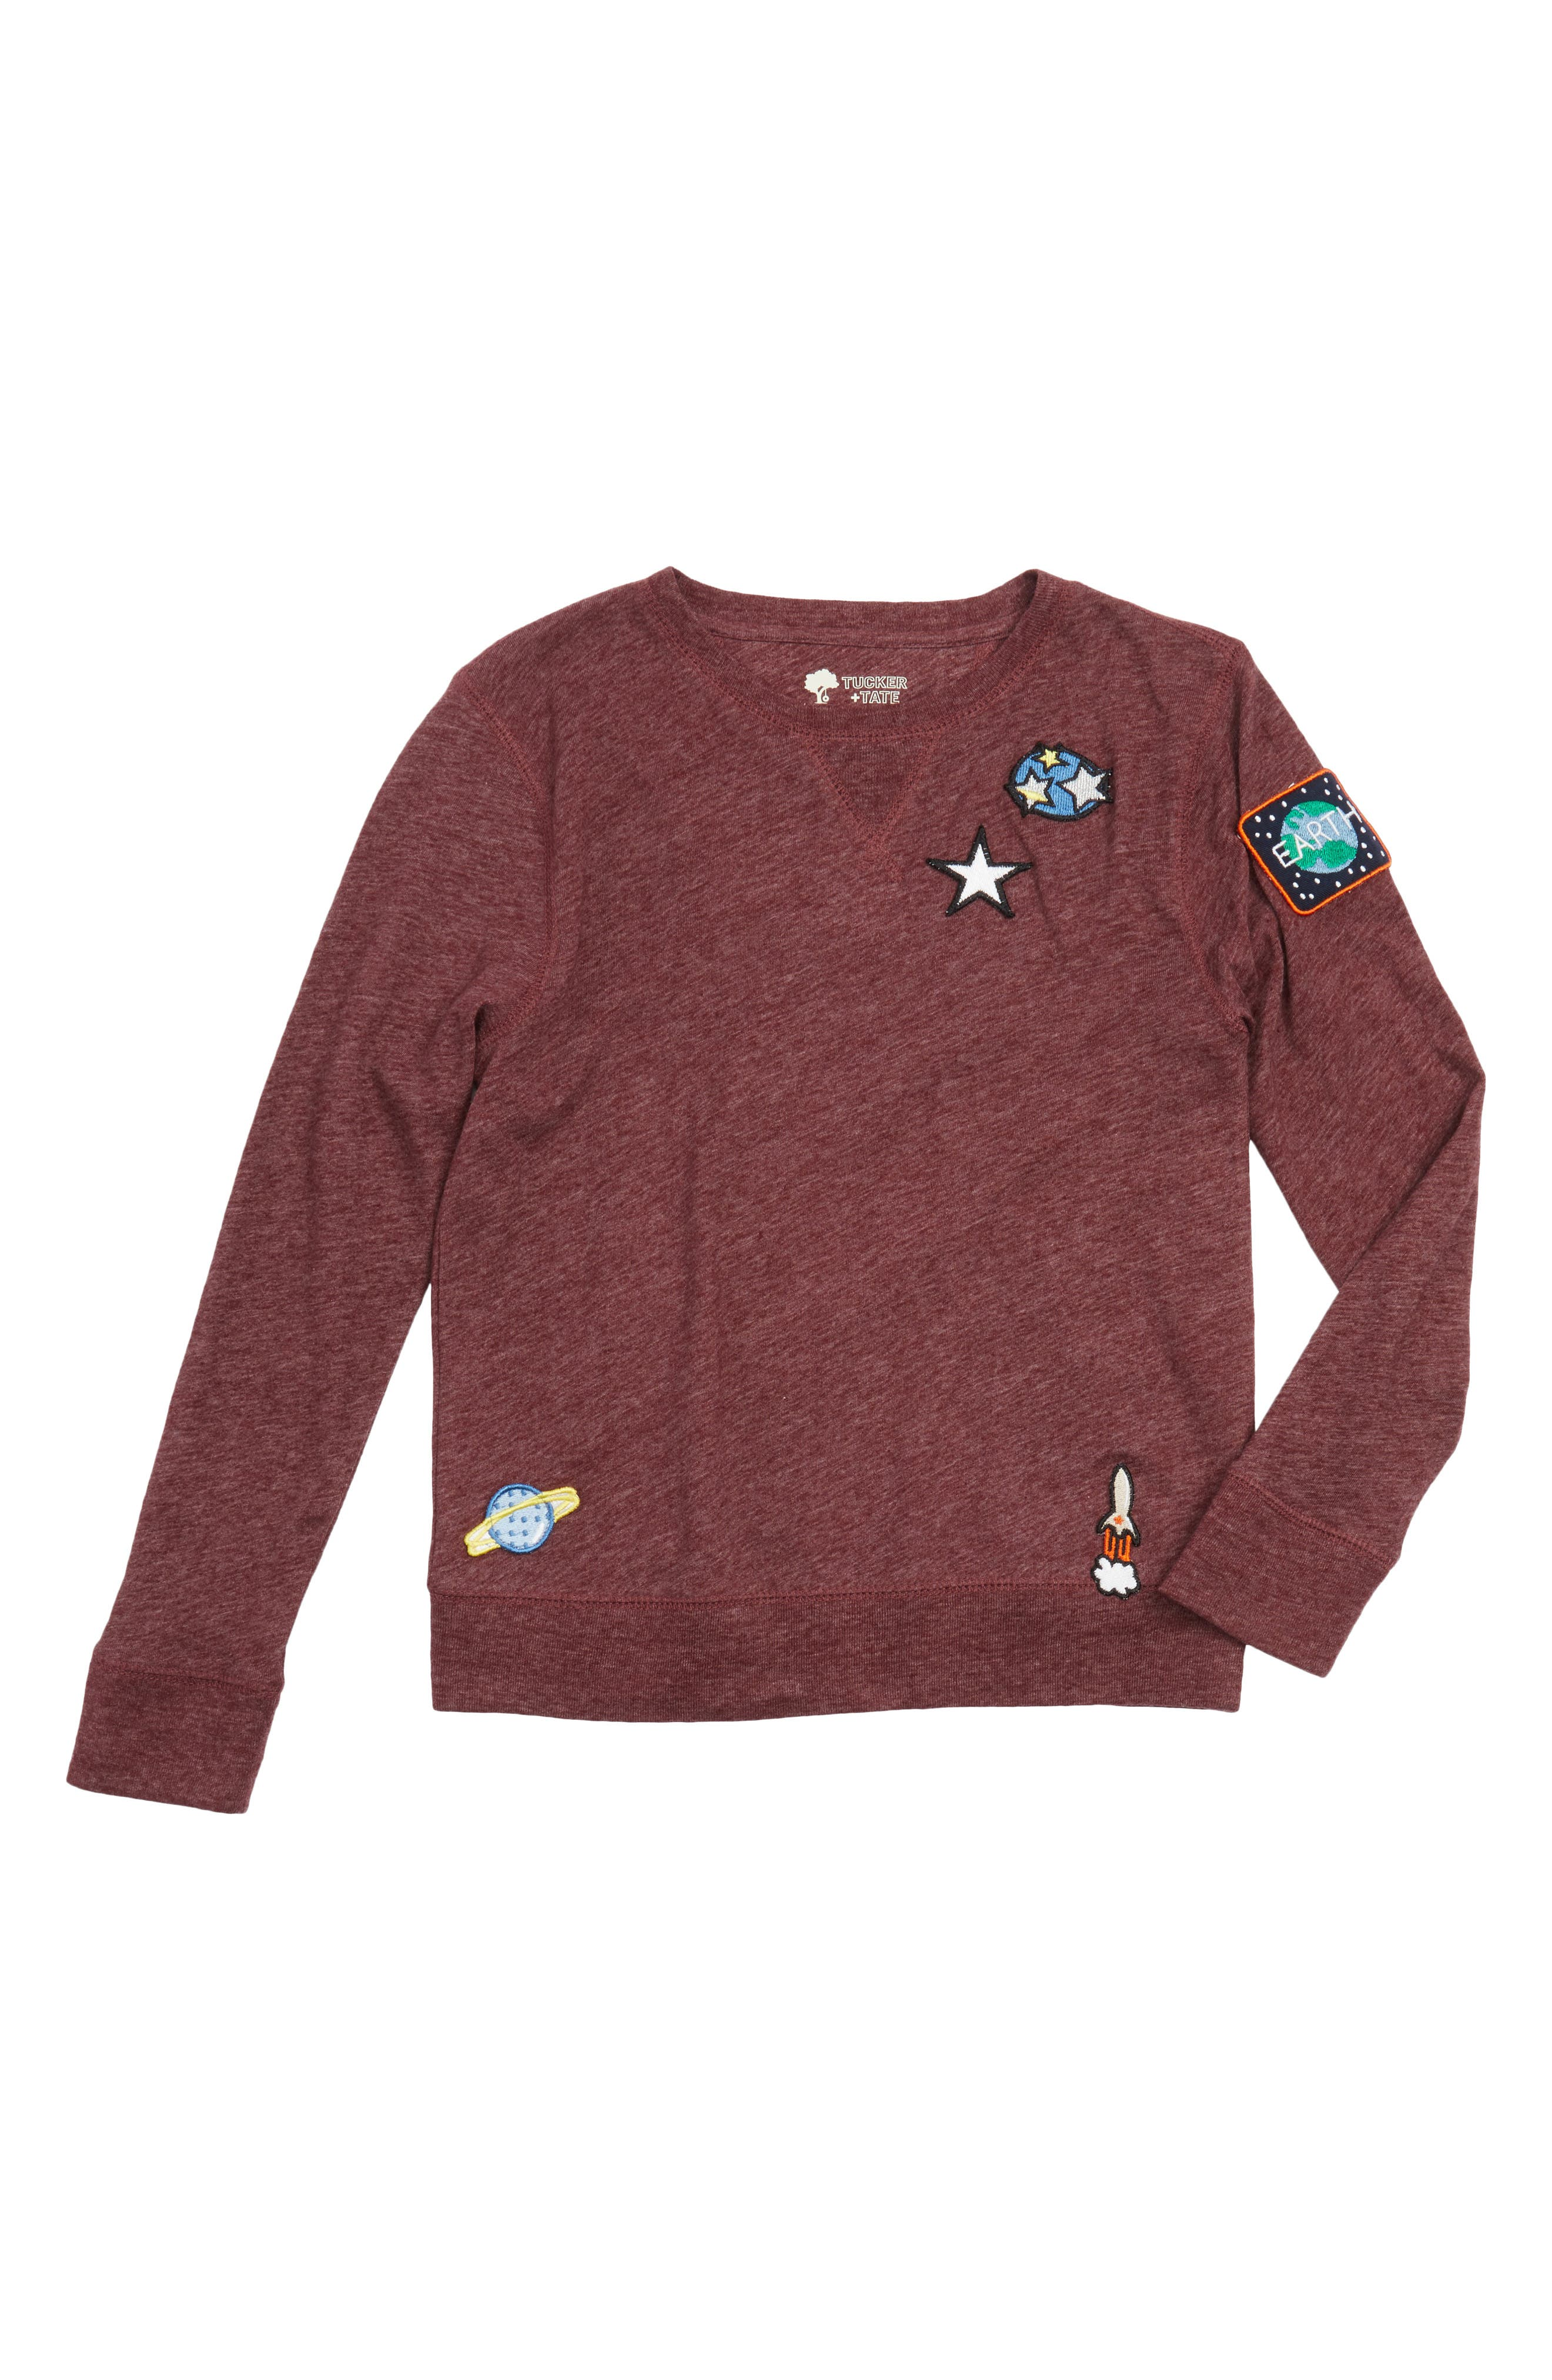 Main Image - Tucker + Tate Outer Space Appliquéd Long Sleeve T-Shirt (Toddler Boys & Little Boys)